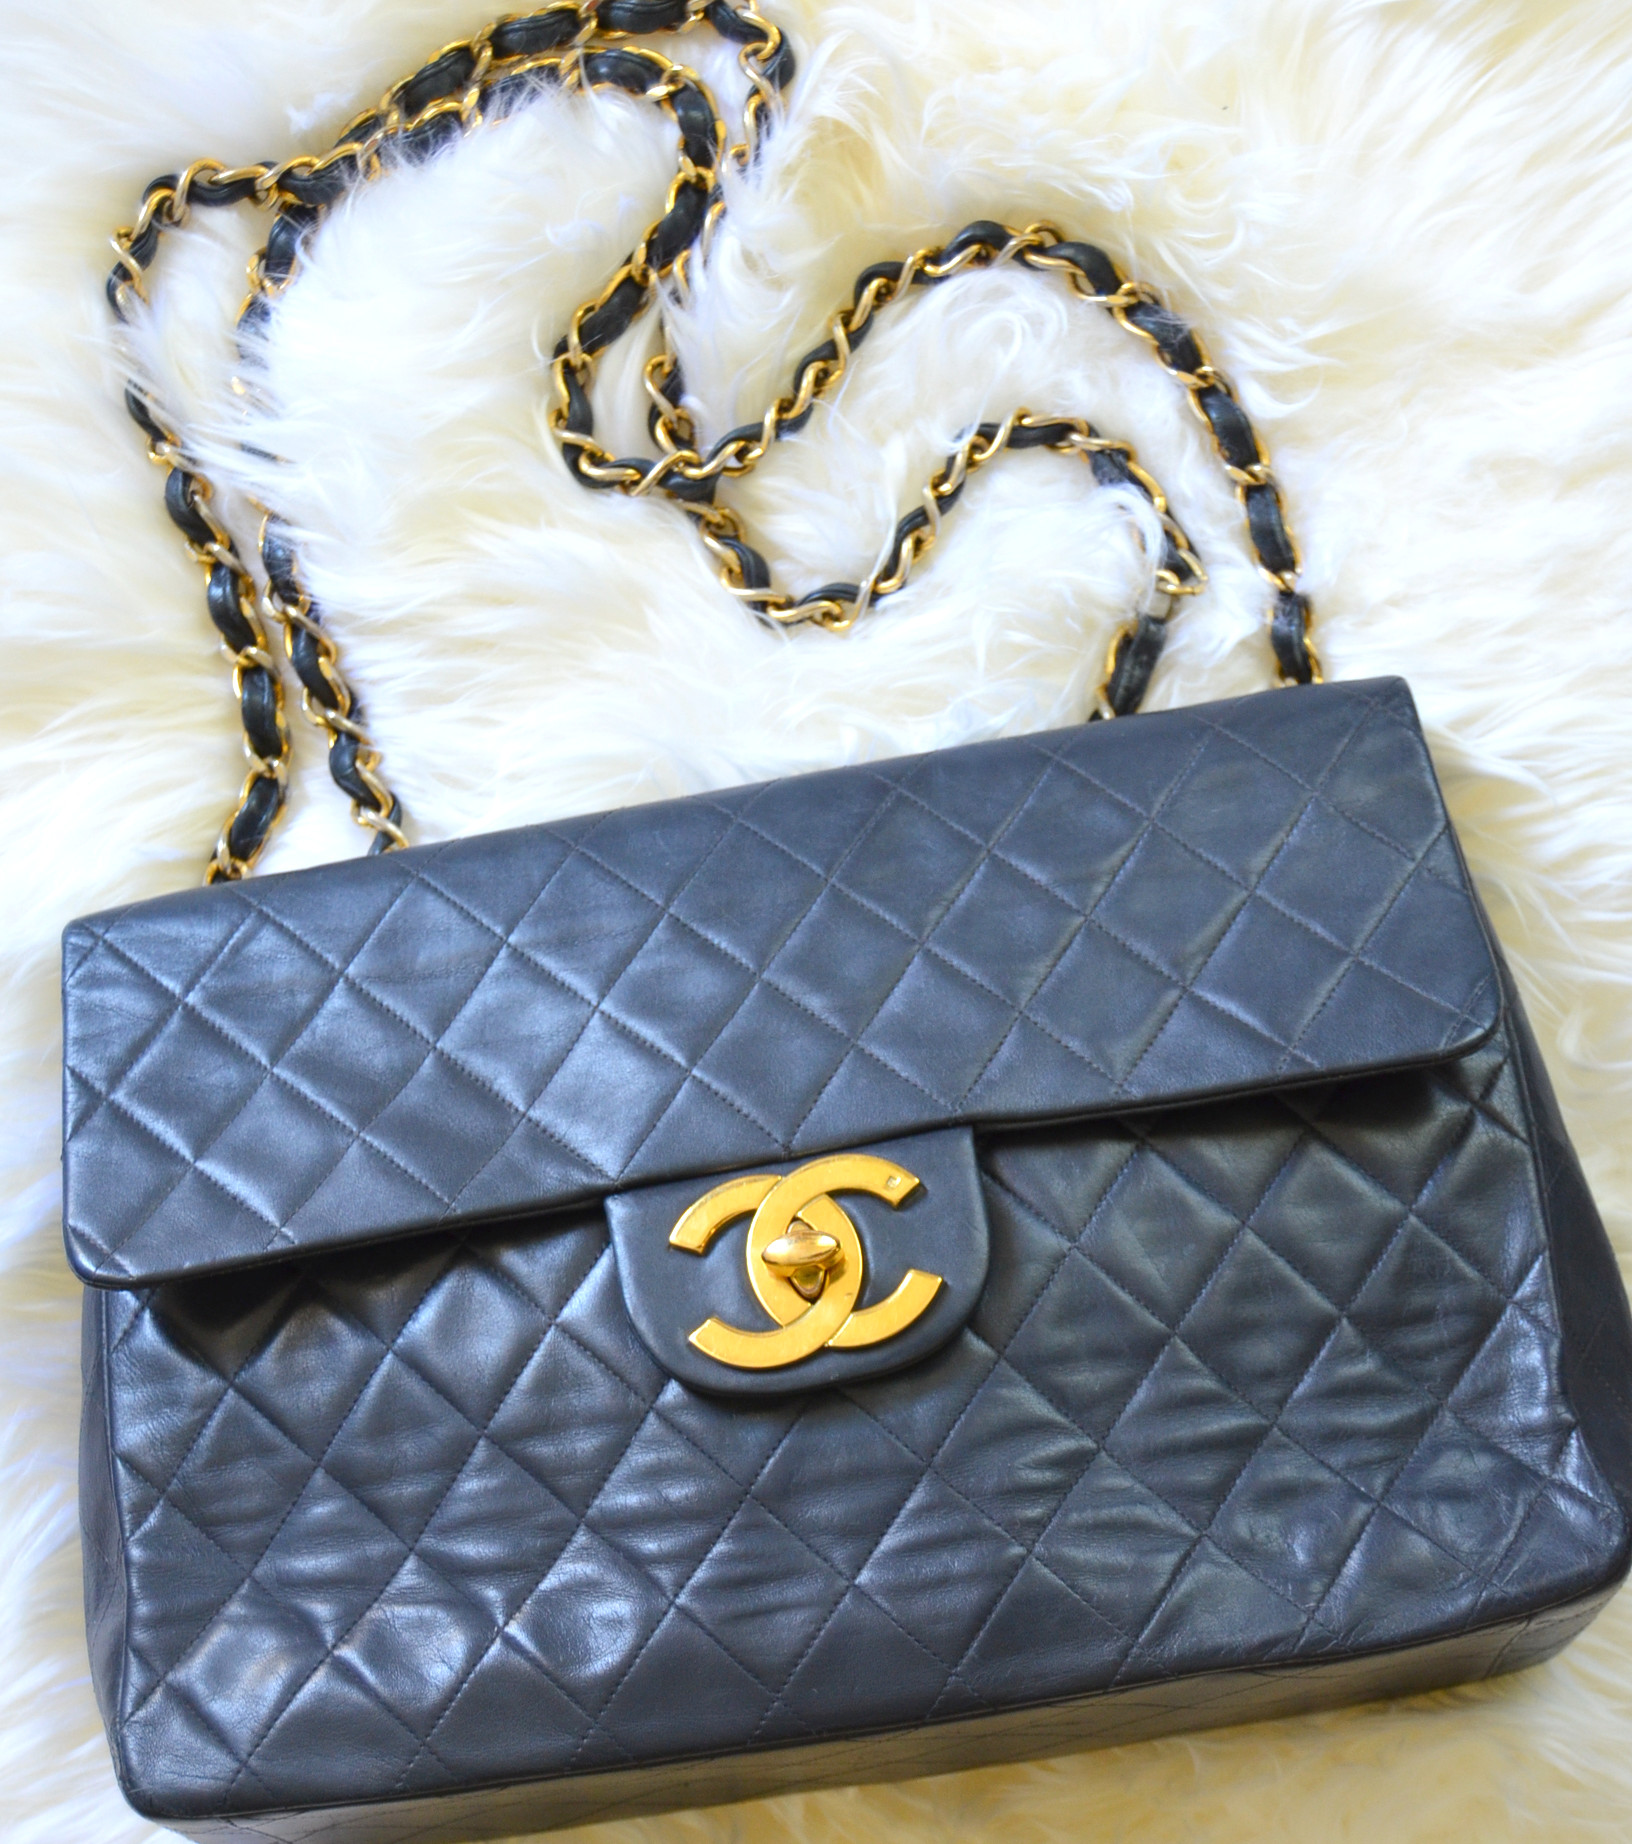 131e331ec7be Bag Review  What Fits in a vintage Chanel Maxi Jumbo CC Flap